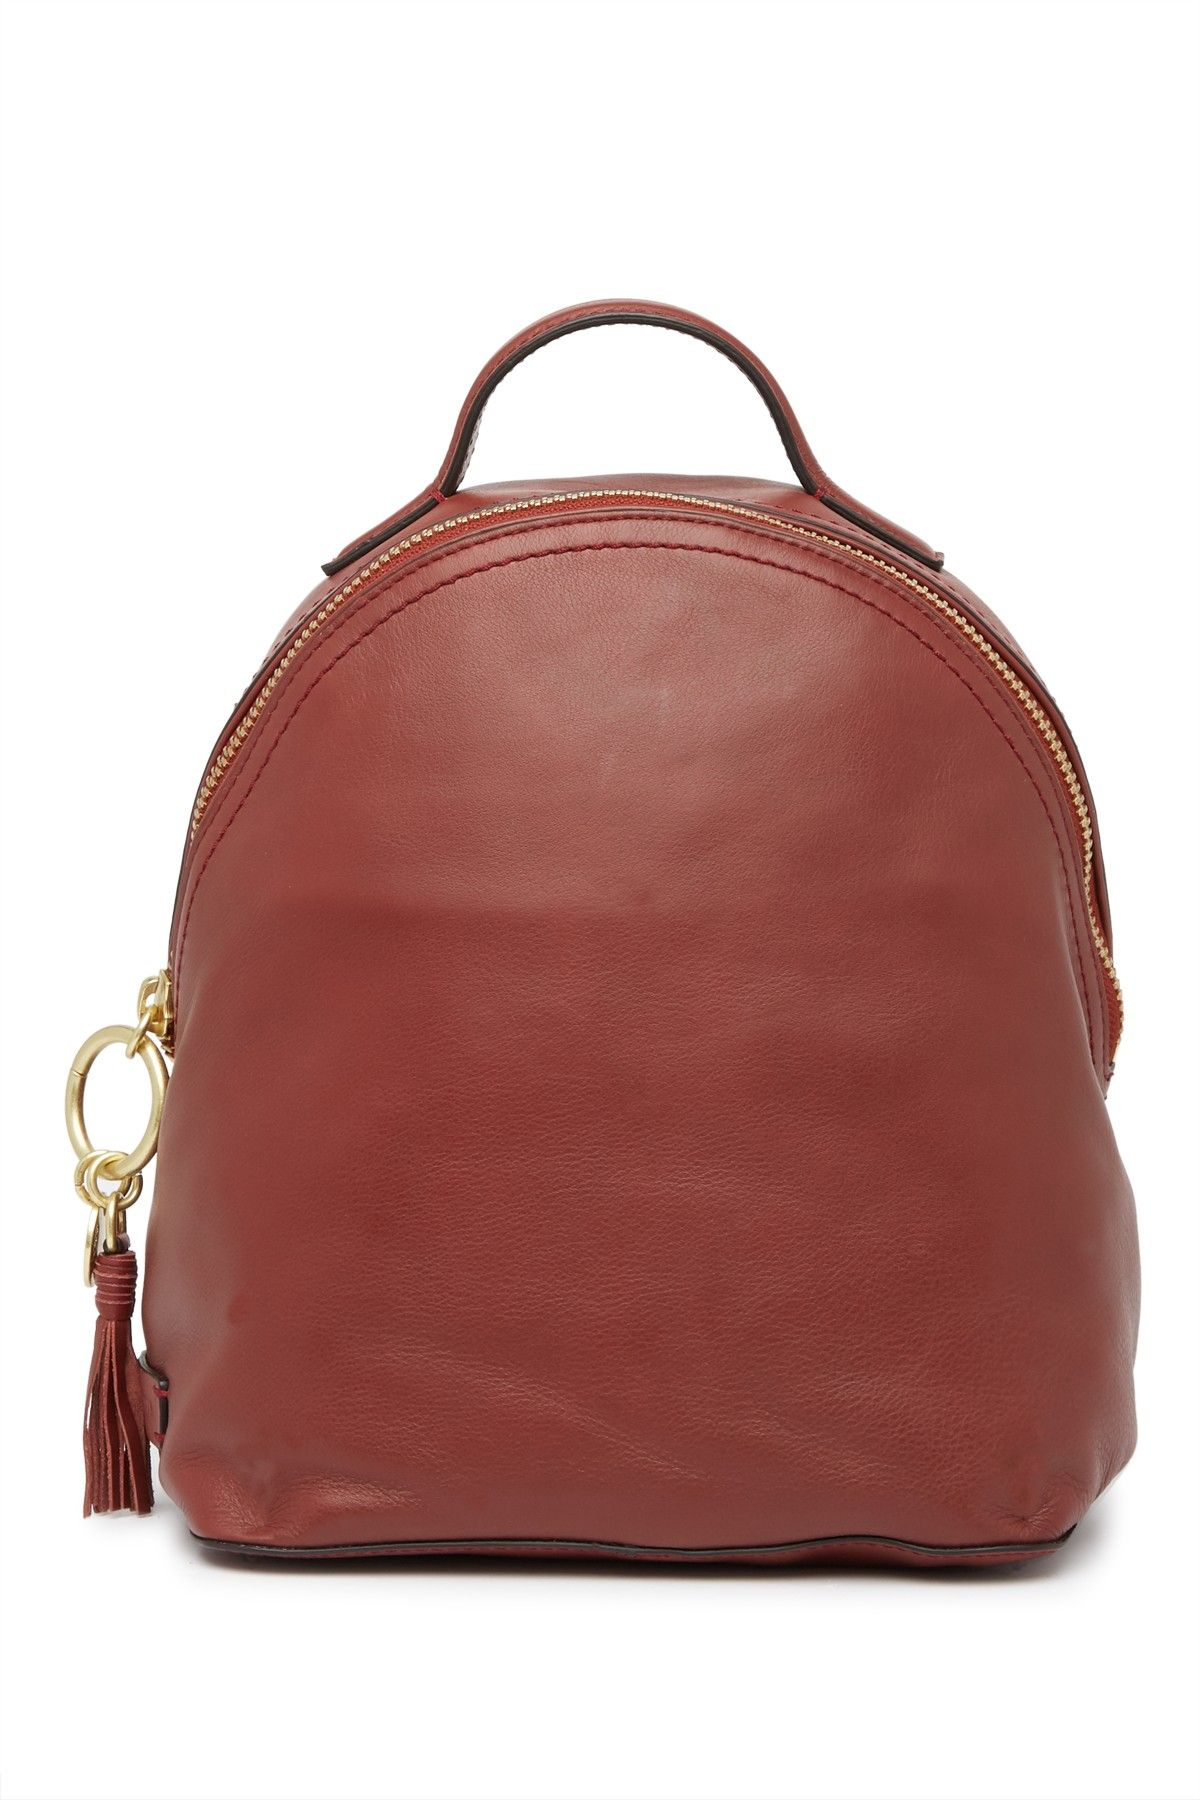 Fantine Mini Backpack Mini backpack, Backpacks, Cole haan